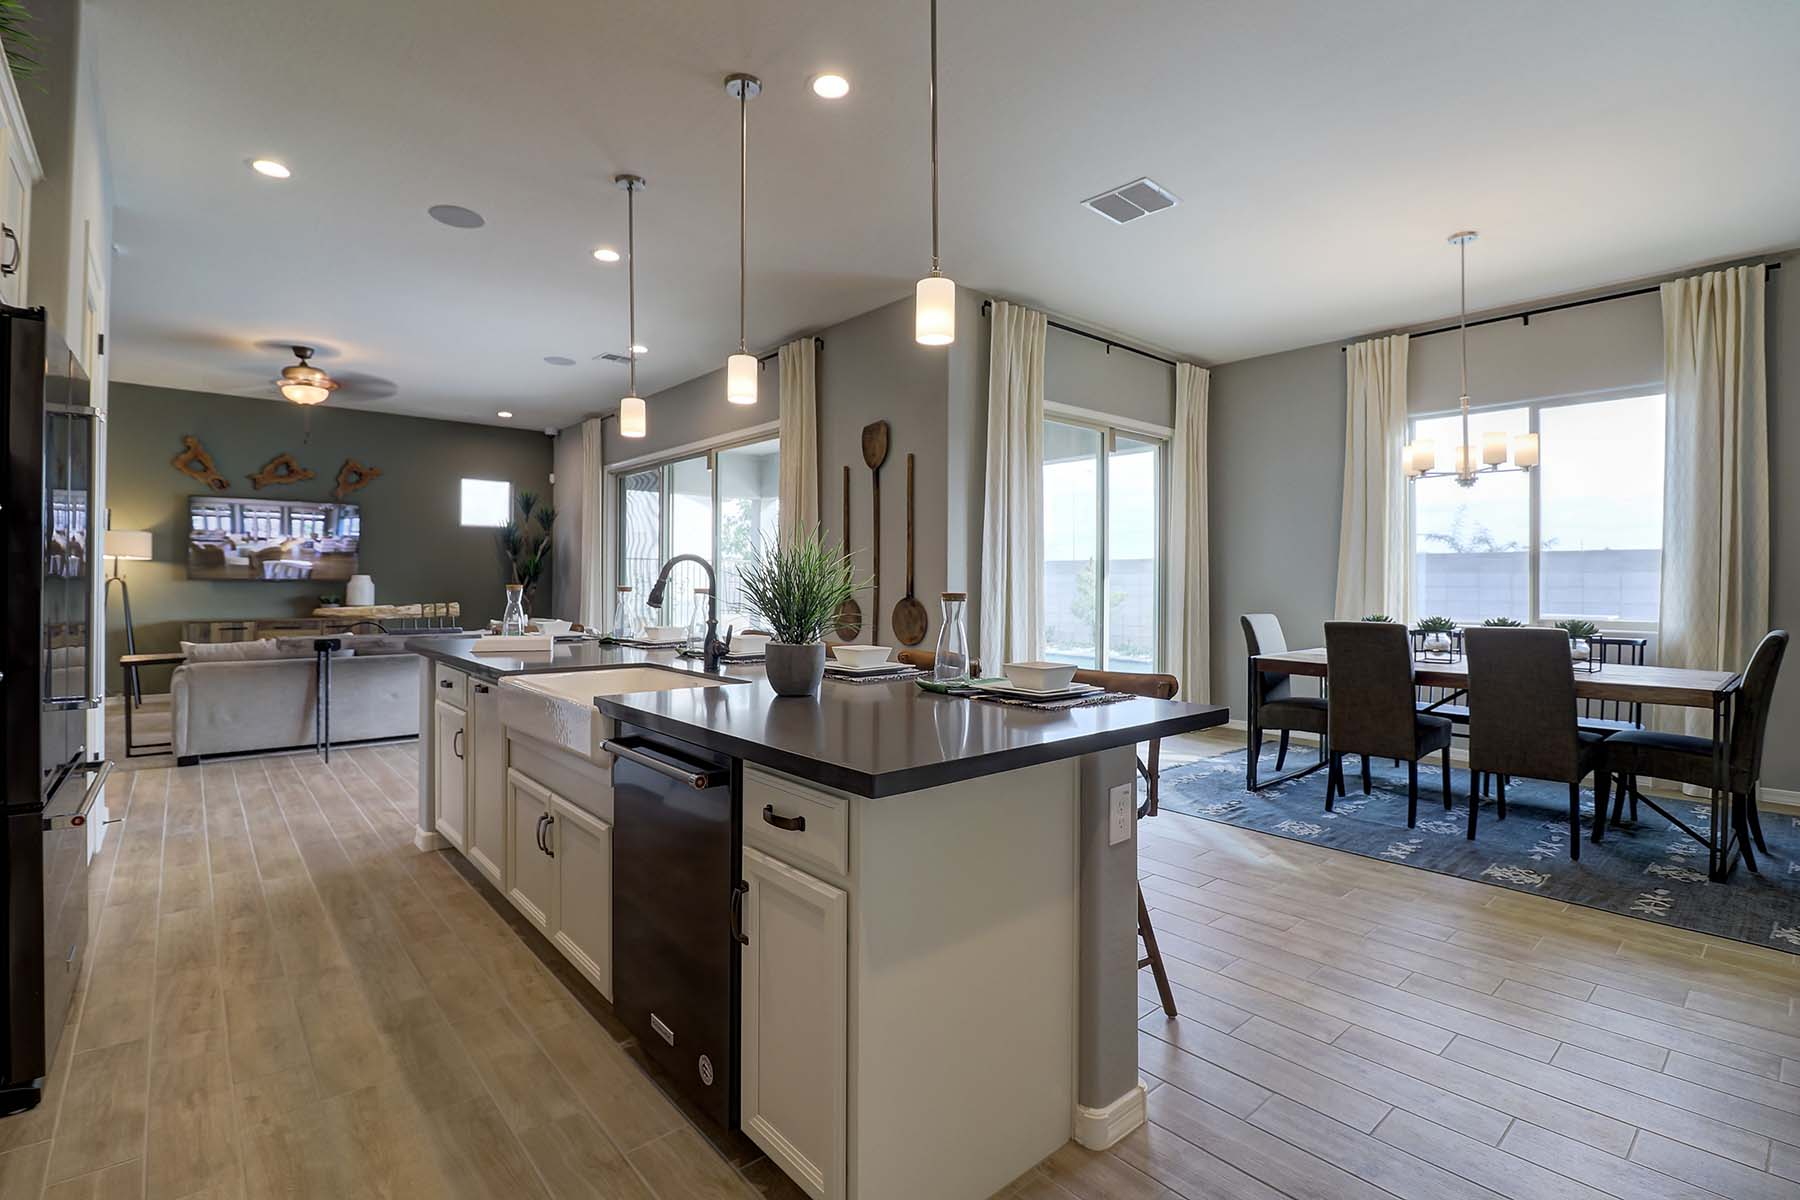 Whitmore Plan  at Roosevelt Park in Avondale Arizona by Mattamy Homes